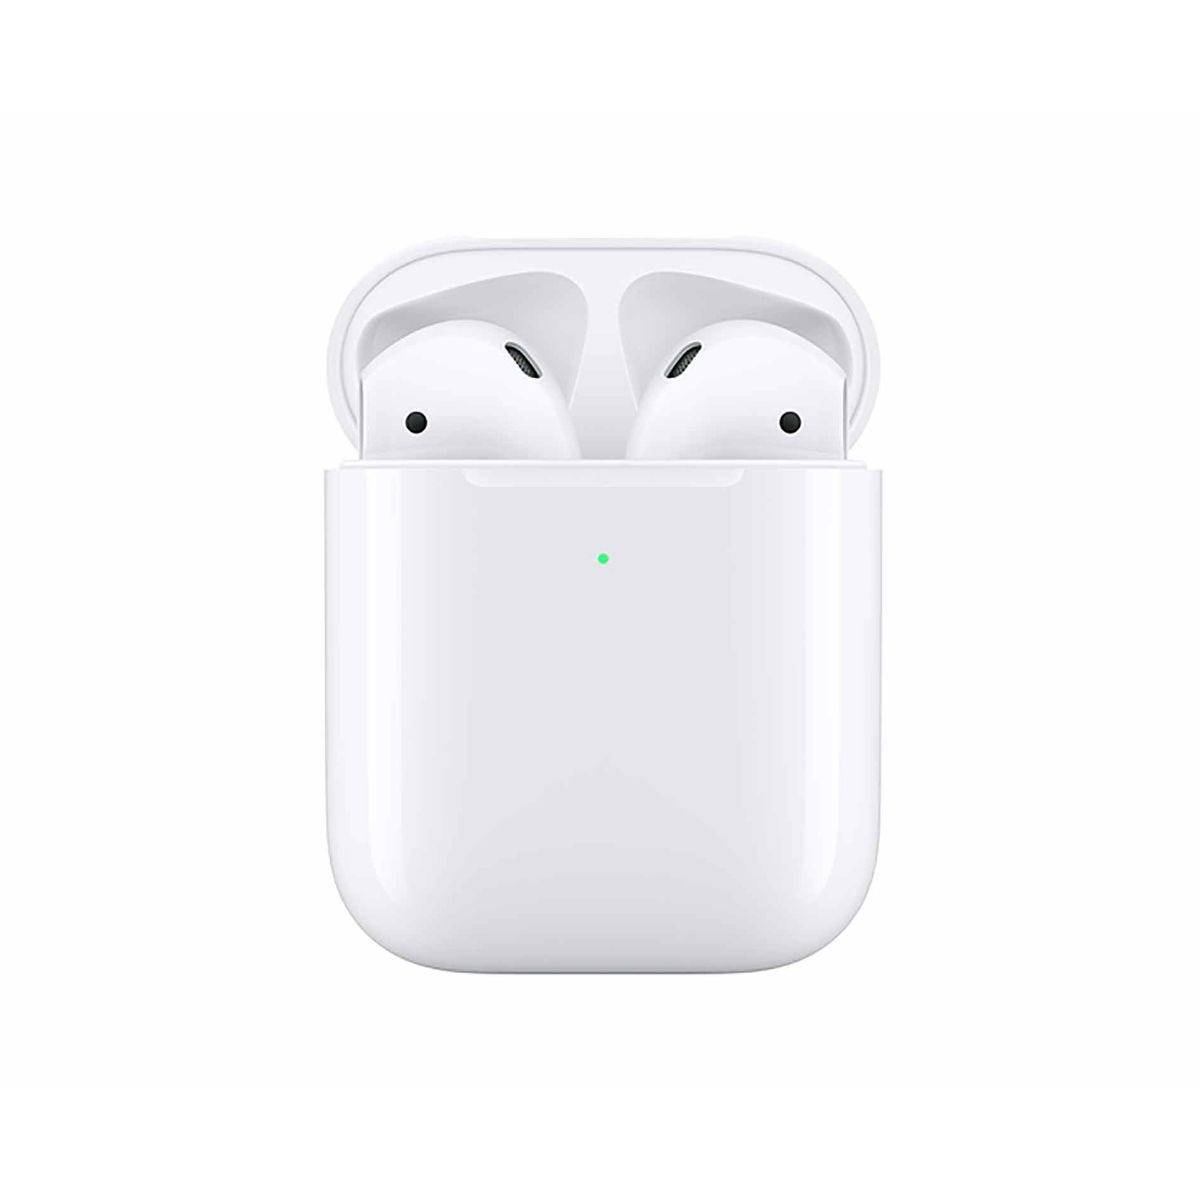 Image of Apple AirPods with Wireless Charging Case Gen 2, White